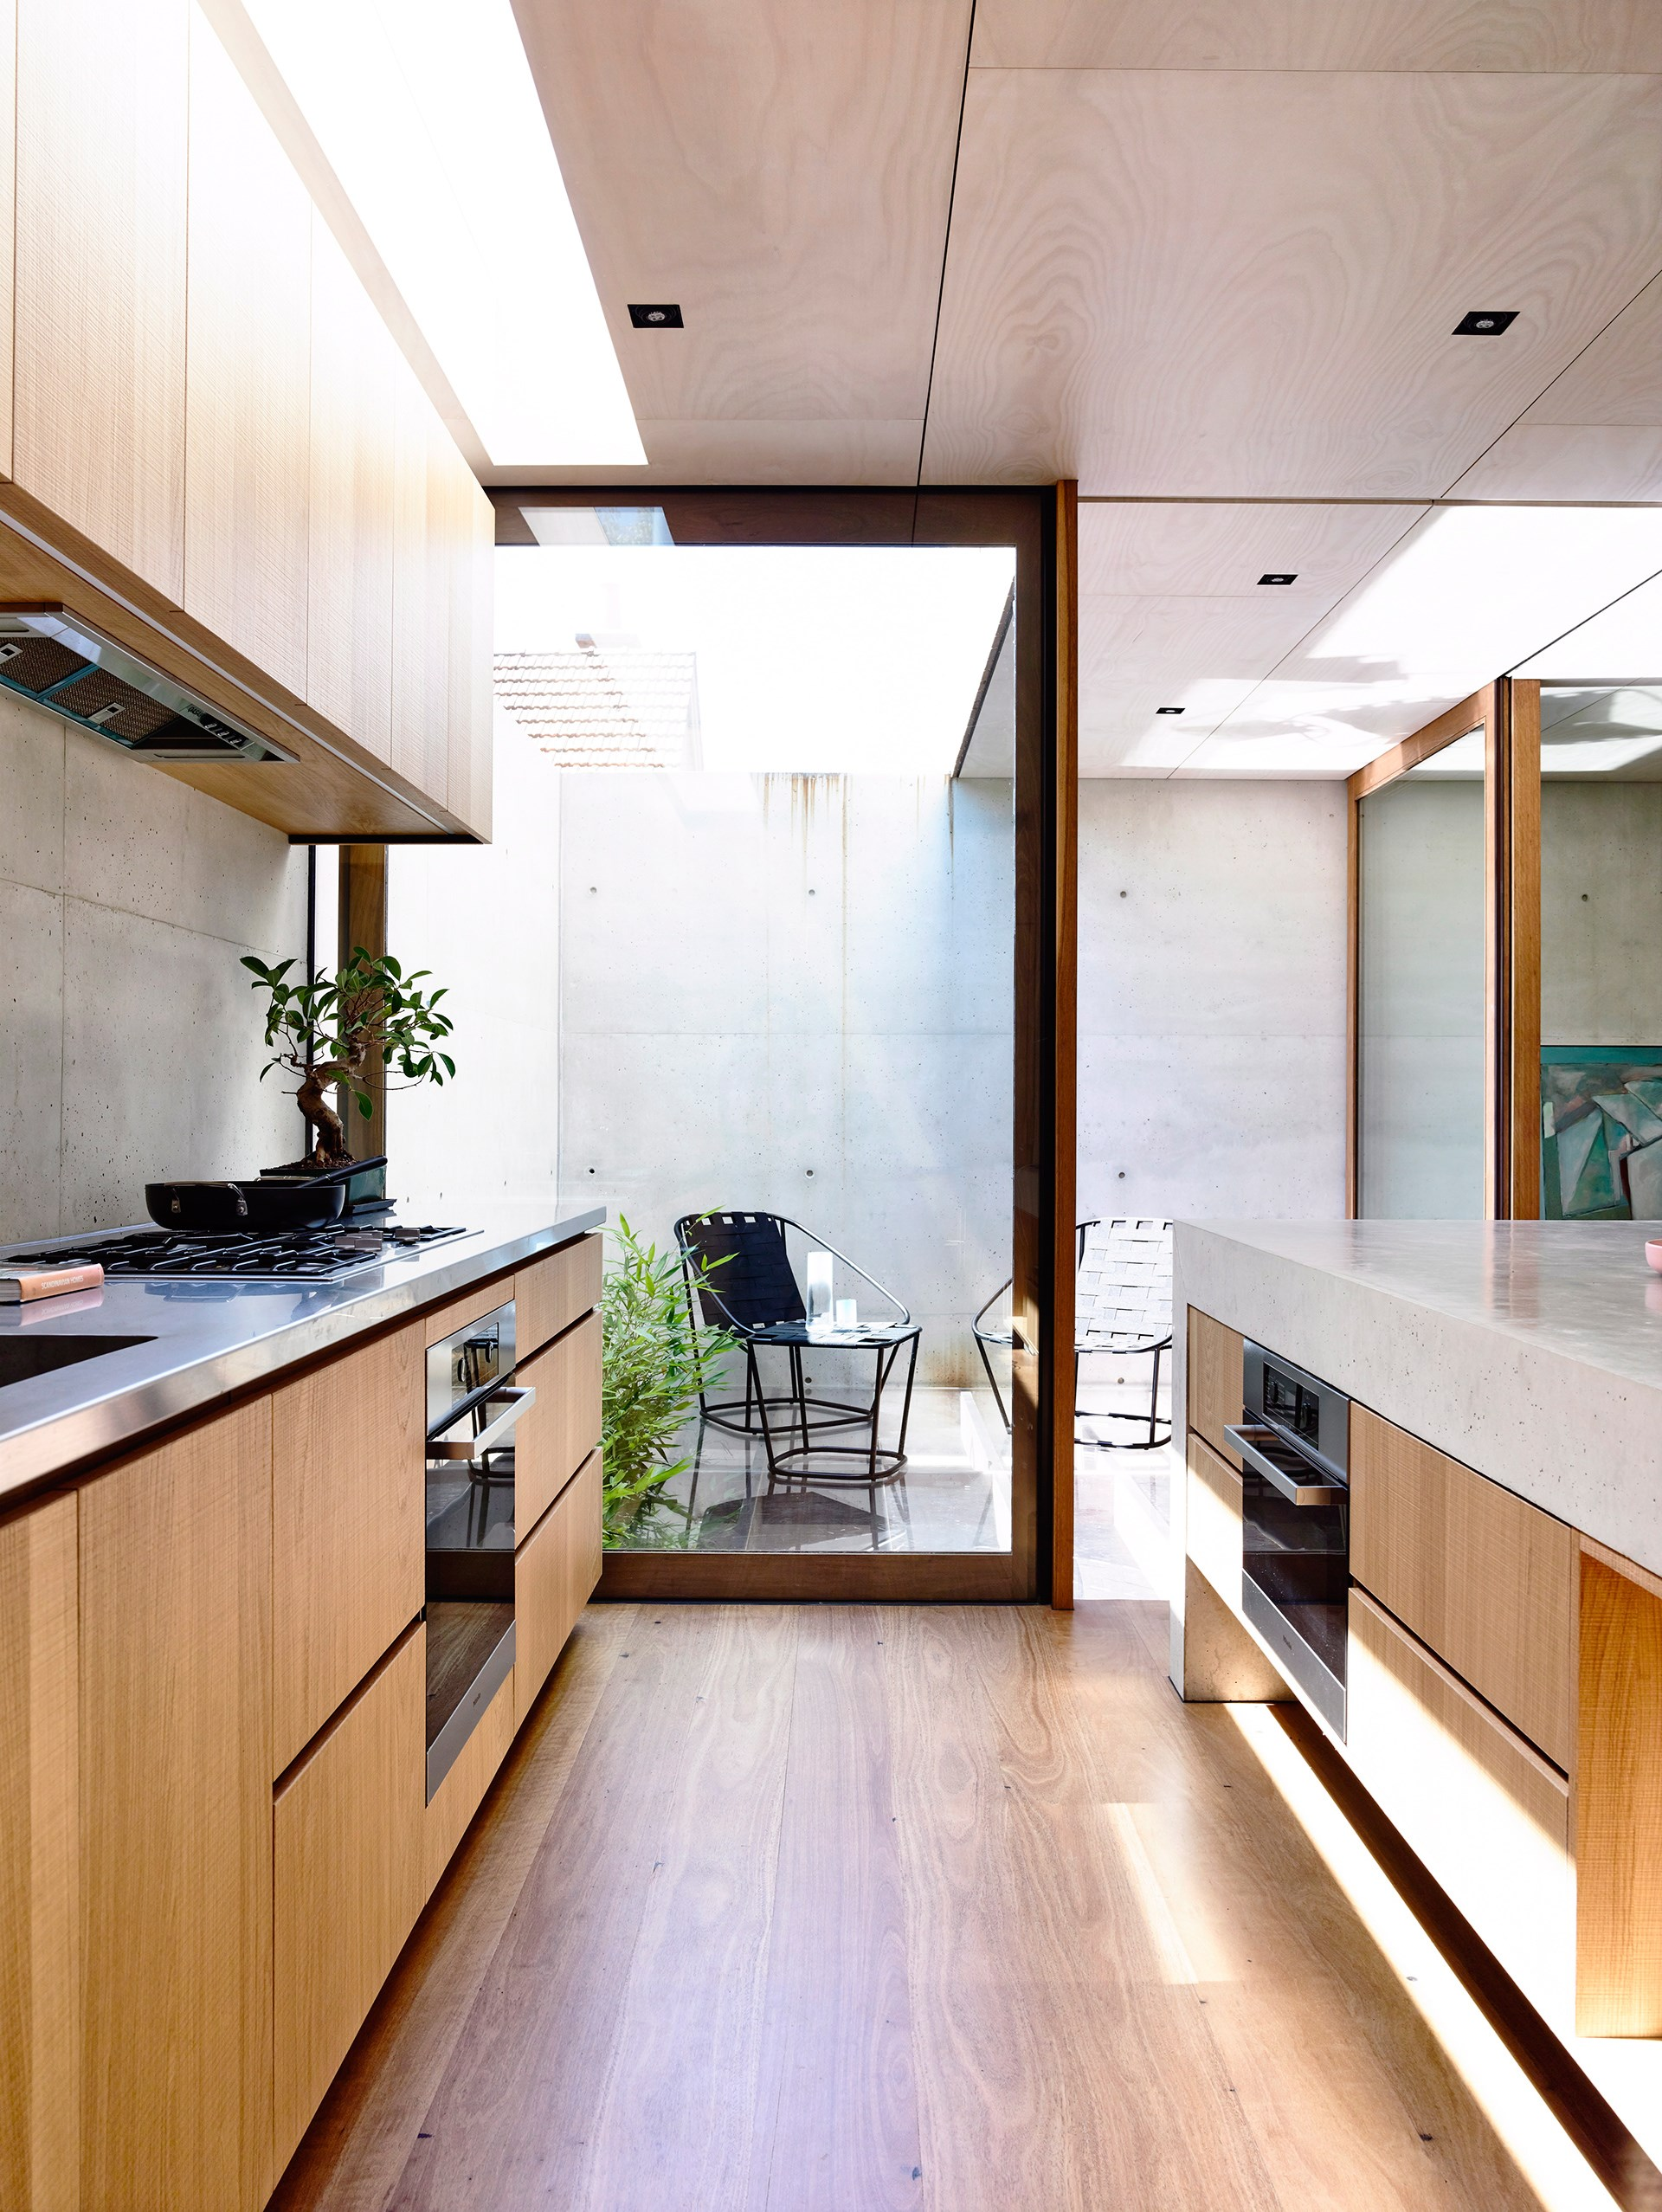 An integrated oven allows for a sleek kitchen profile, where stunning joinery steals the show. *Photo: Derek Swalwell / bauersyndication.com.au*